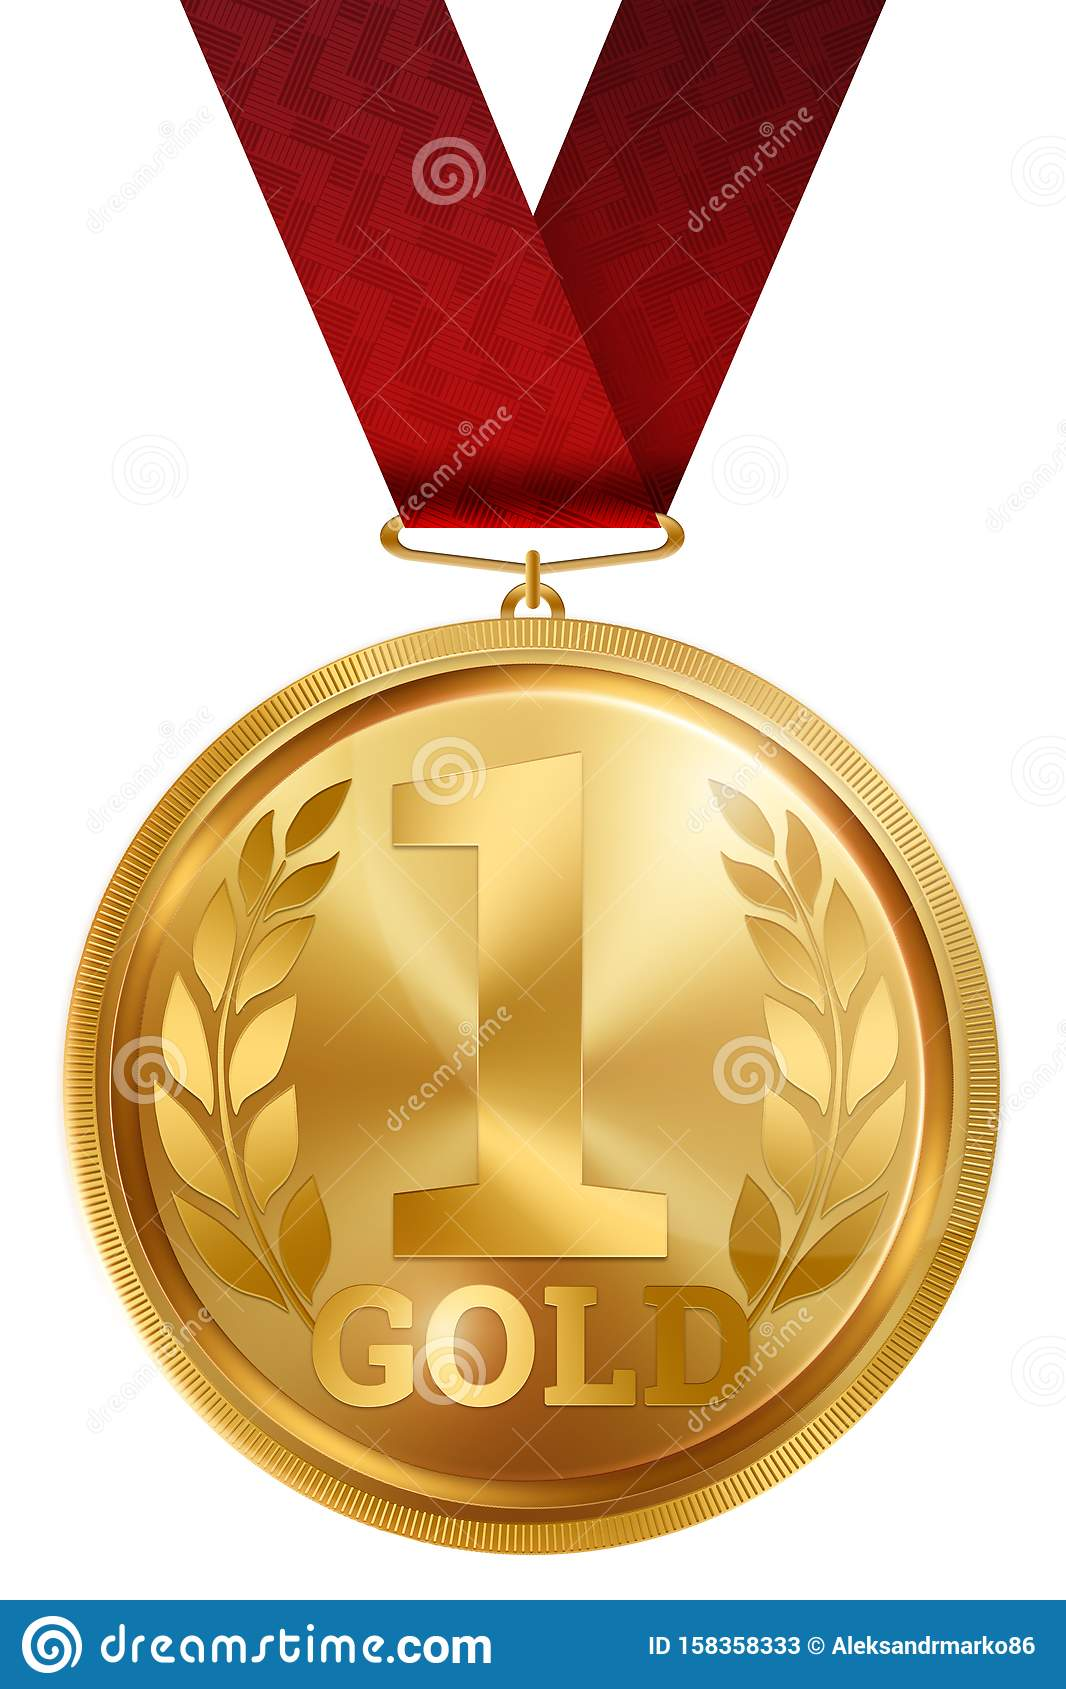 gold-medal-best-first-place-winner-champion-number-one-st-place-metalworker-s-reward-red-ribbon-isolated-white-gold-medal-best-158358333.jpg